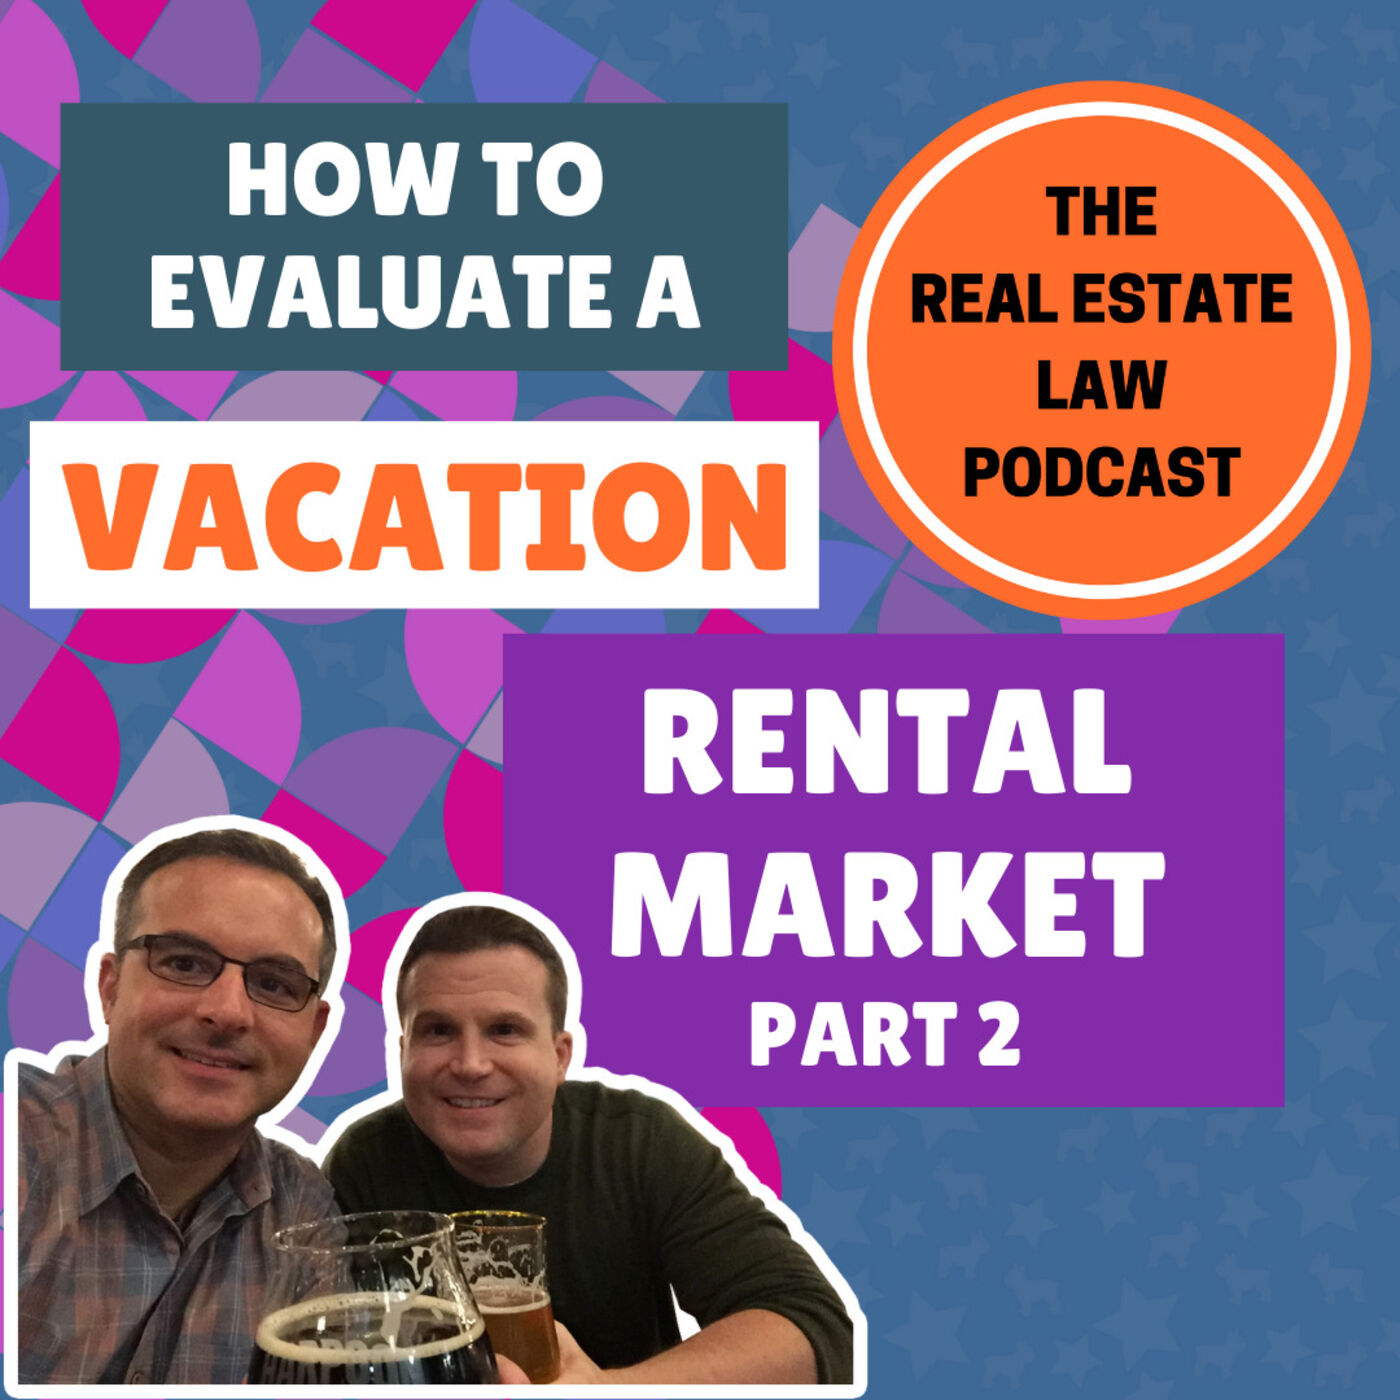 21 - How to Evaluate a Vacation Rental Market, Part 2 of 2